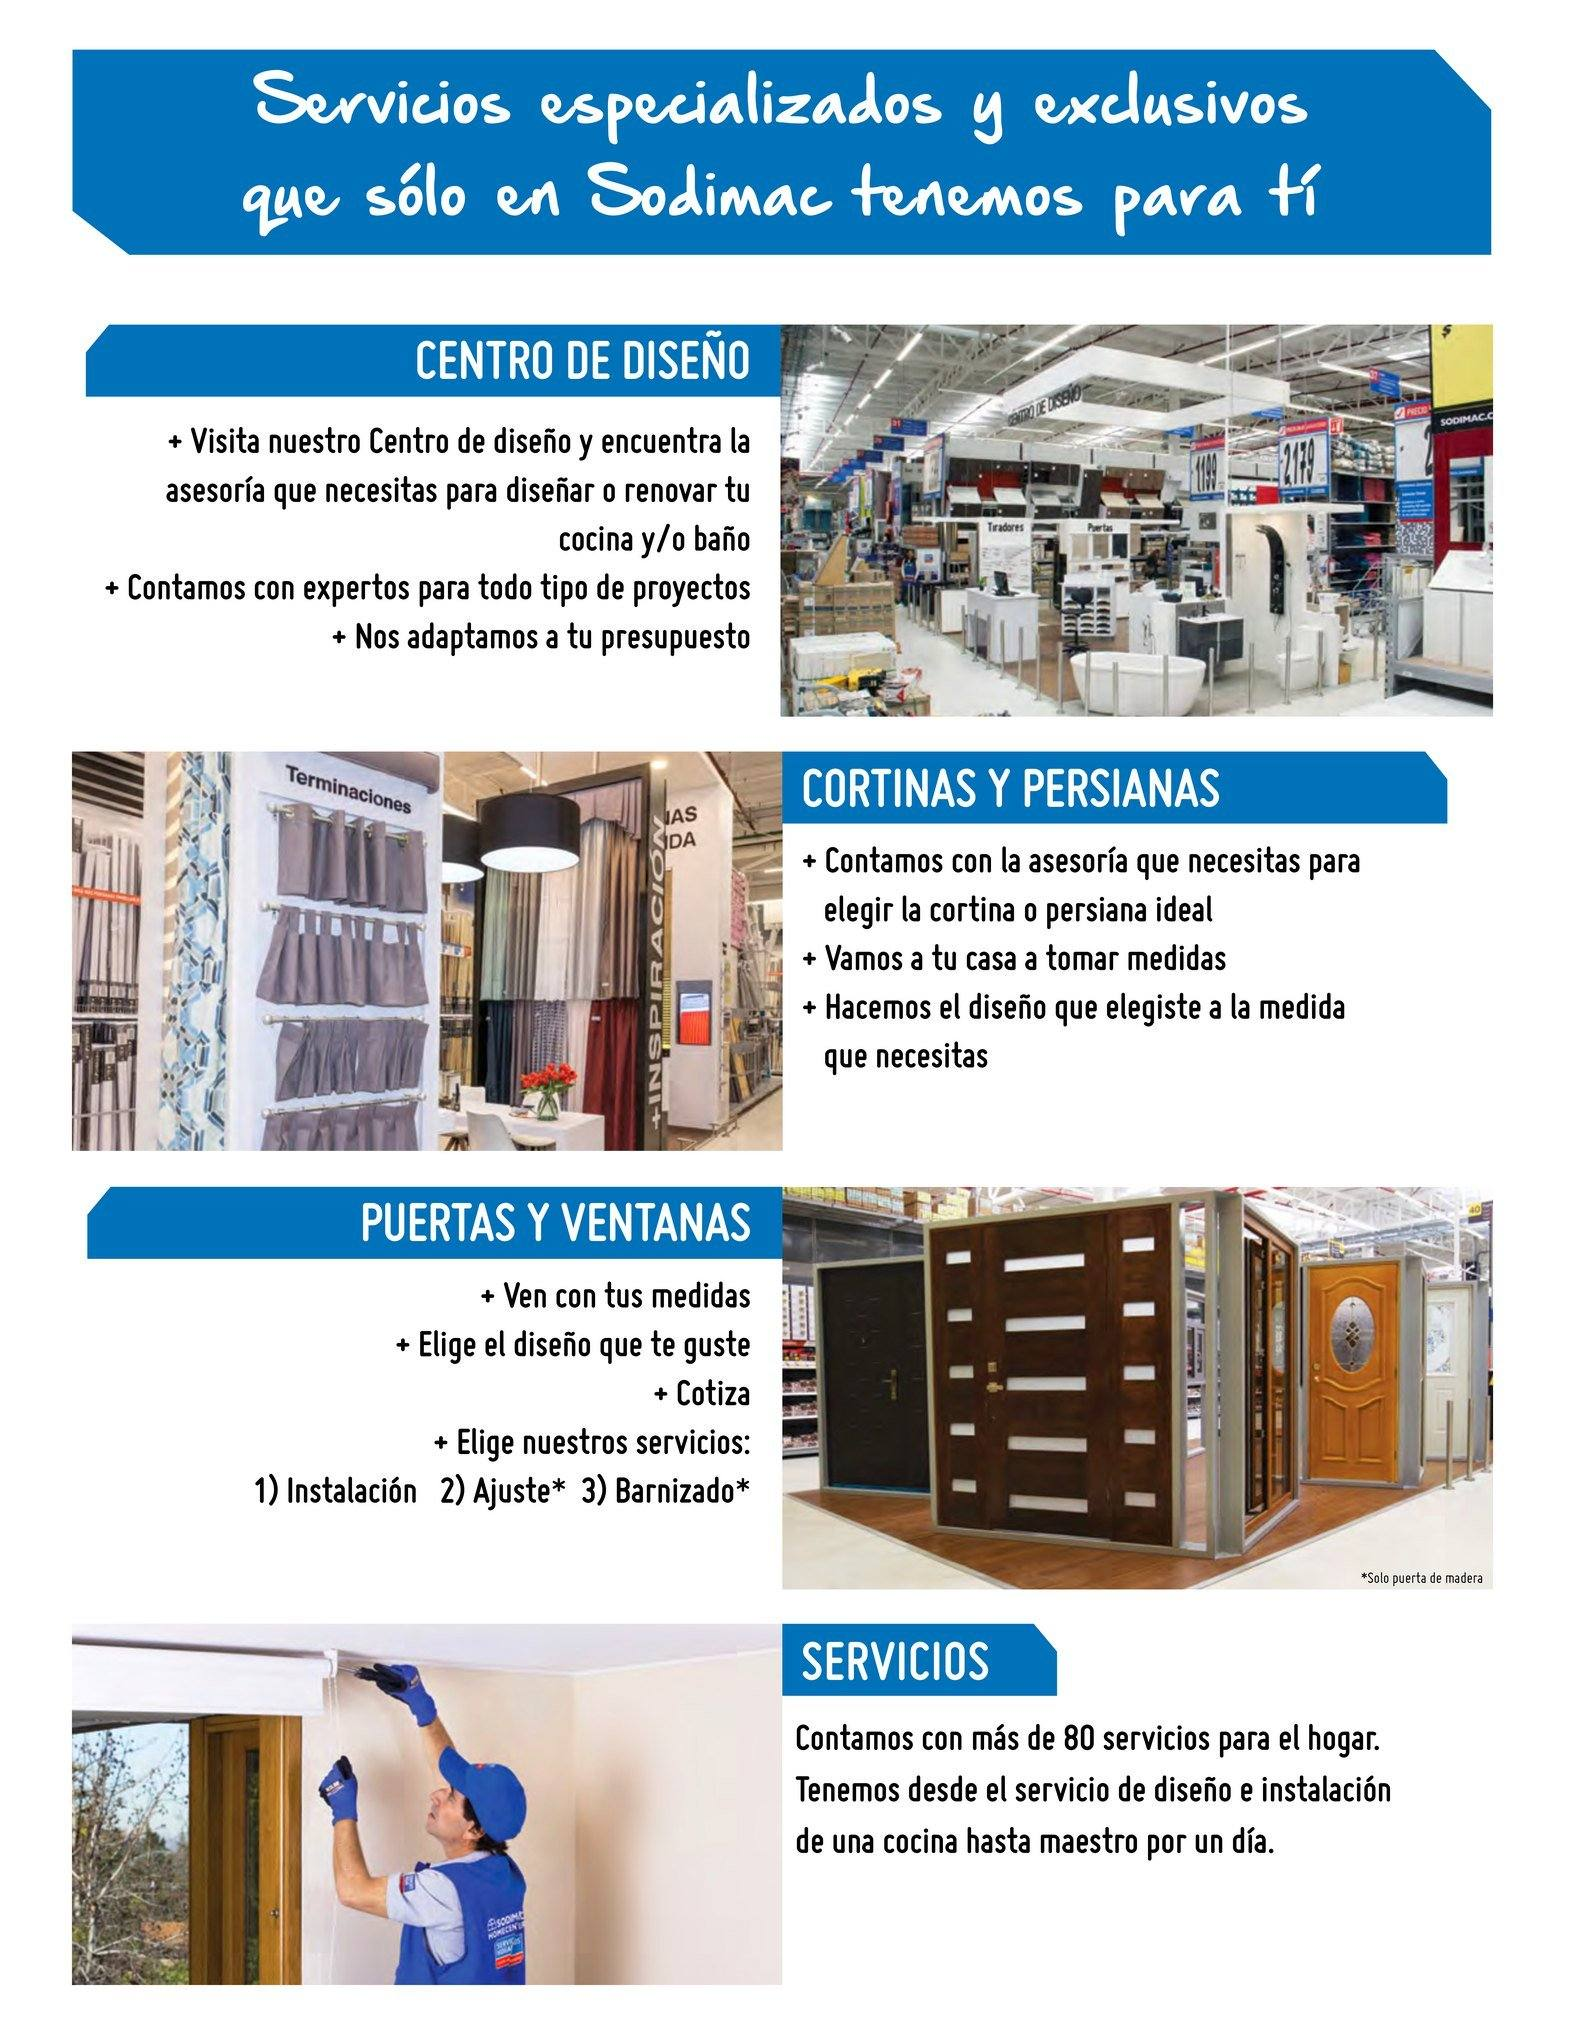 4106fc61e Folleto actual Sodimac - 1.3.2019 - 31.3.2019 - Ventas - cocina,